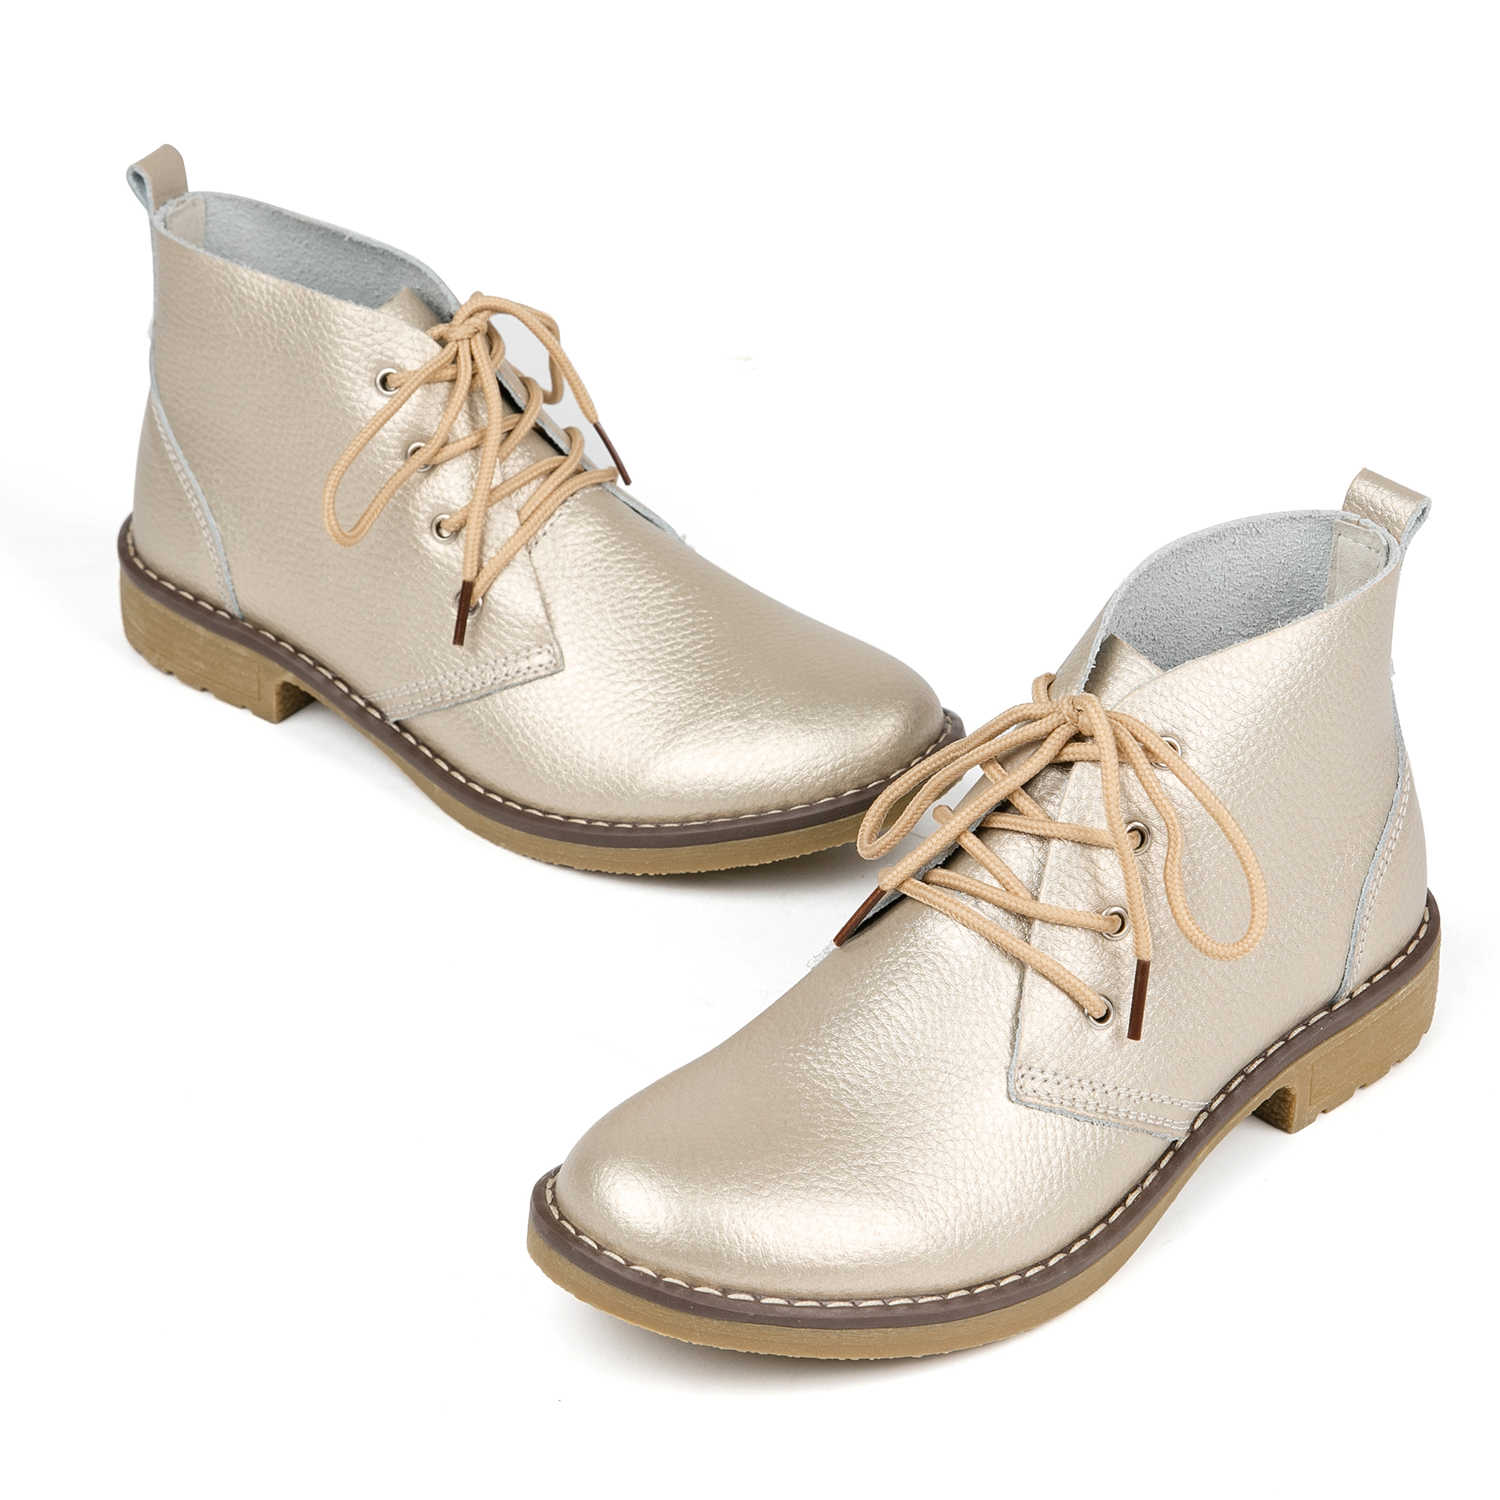 19597892c7a WeiDeng Genuine Leather Ankle Boots Women Classic Matin Fashion Flats  Winter Lace Up High Top Casual Waterproof Shoes Female